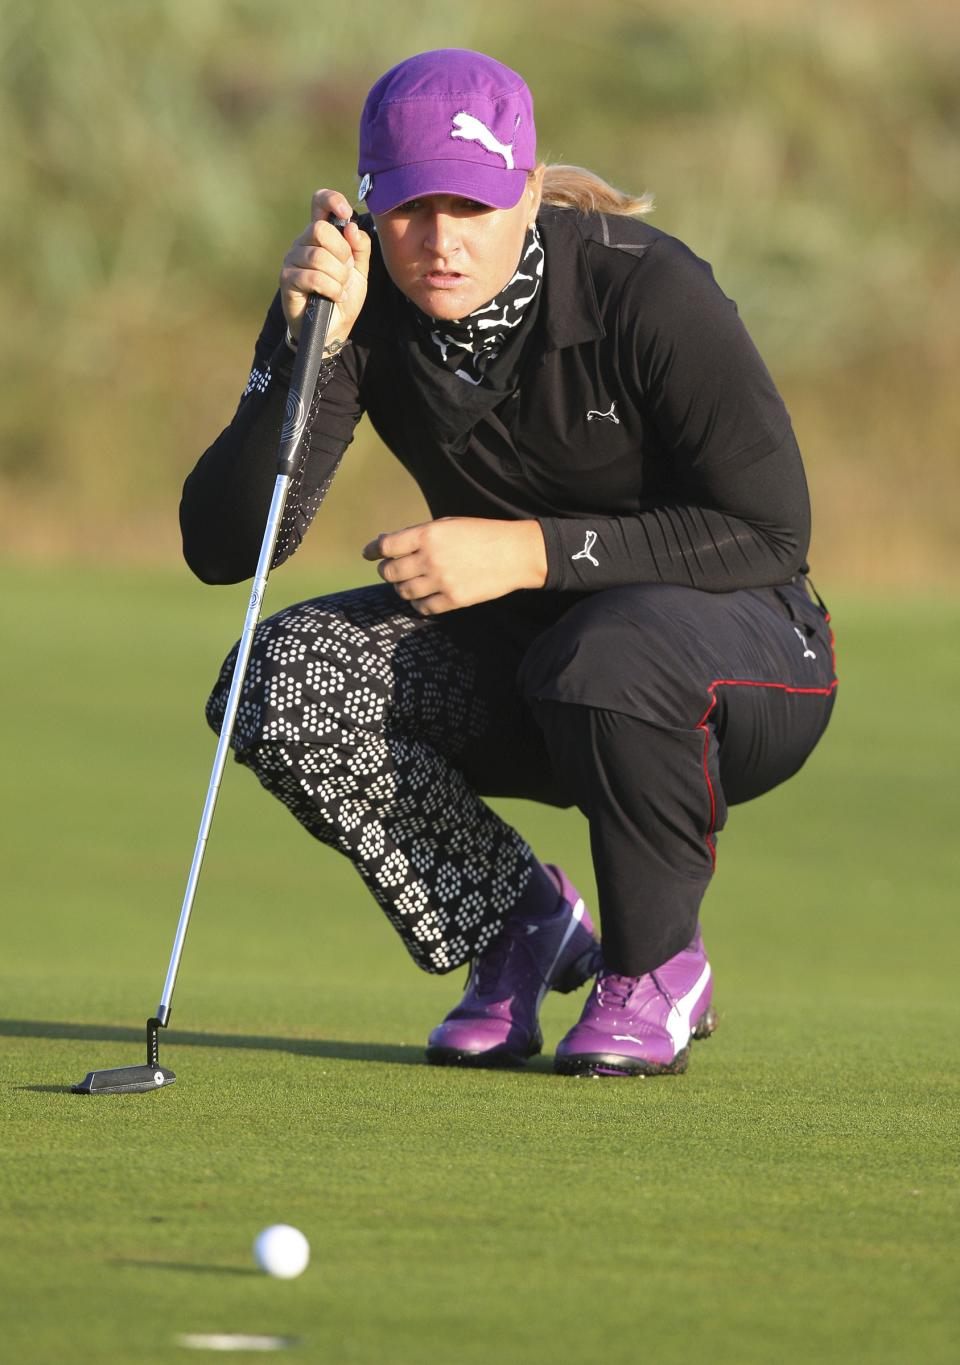 Sweden's Anna Nordqvist judges her putt on the first during the first round of the Women's British Open at Carnoustie Golf Club, Carnoustie, Scotland, Thursday July 28, 2011.(AP Photo/Scott Heppell)